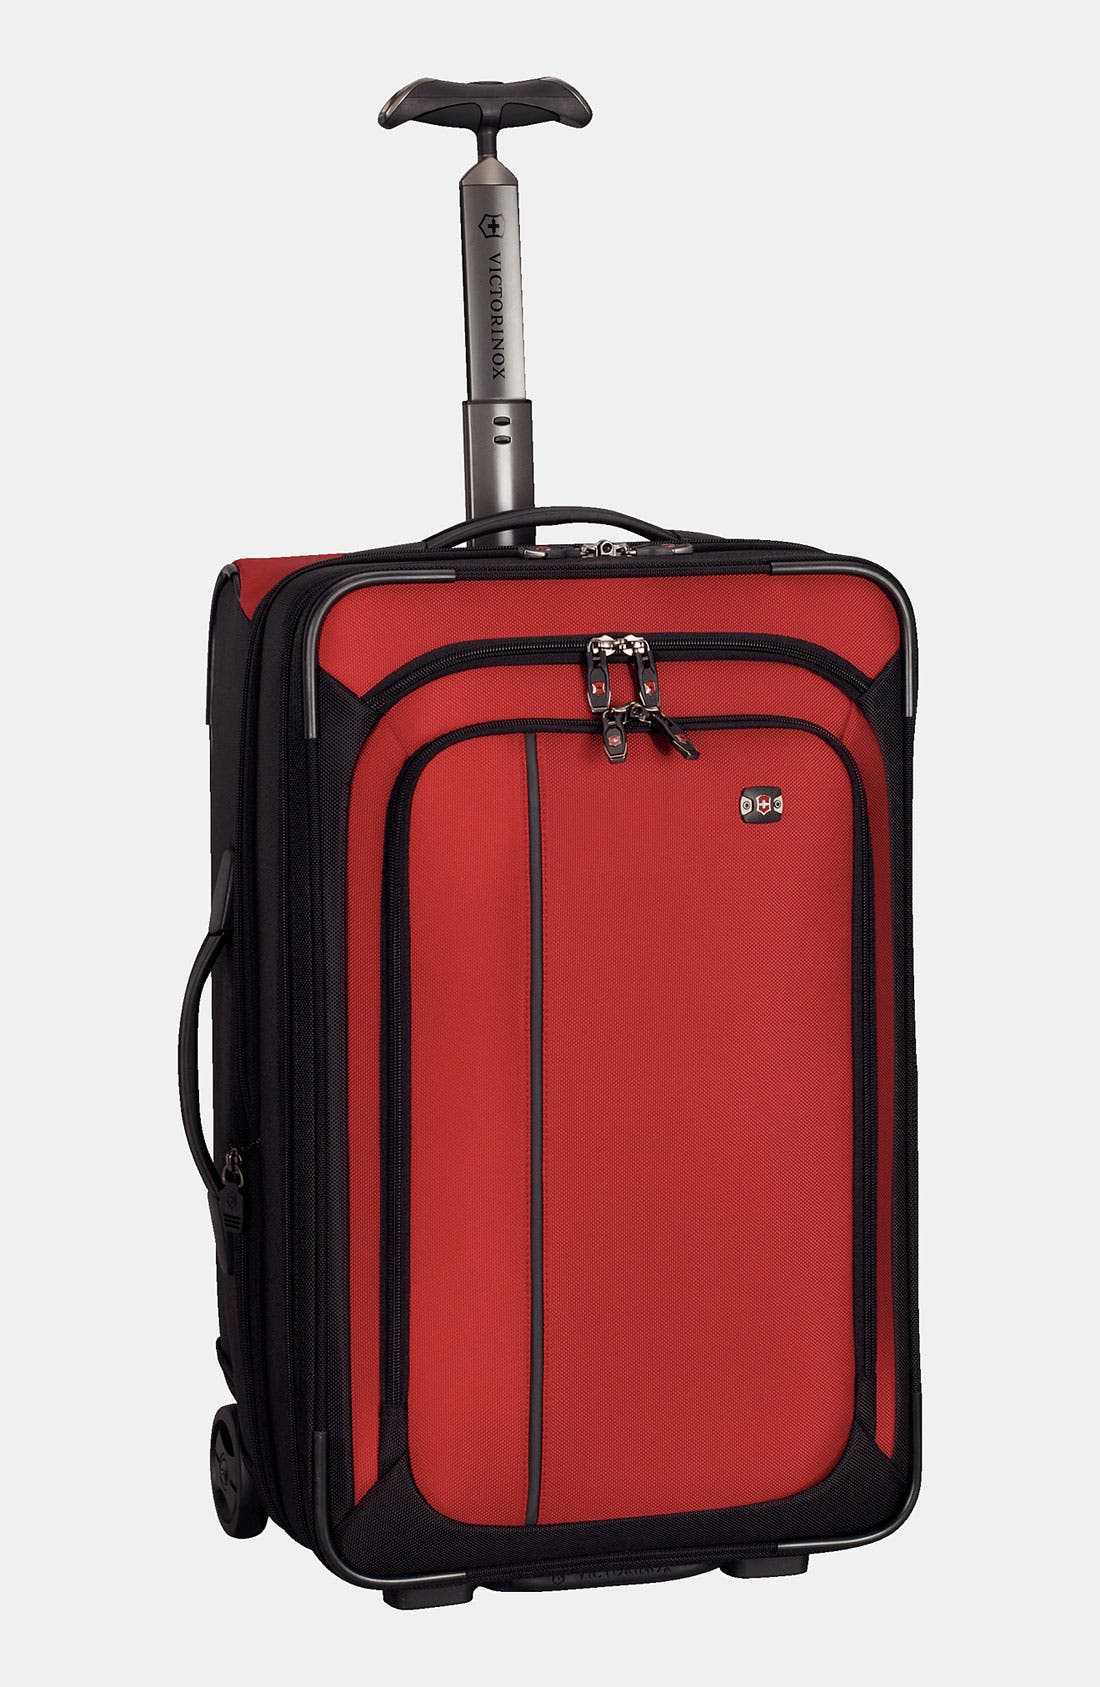 'Werks - Traveler' Rolling Carry-On,                         Main,                         color, Red/ Black